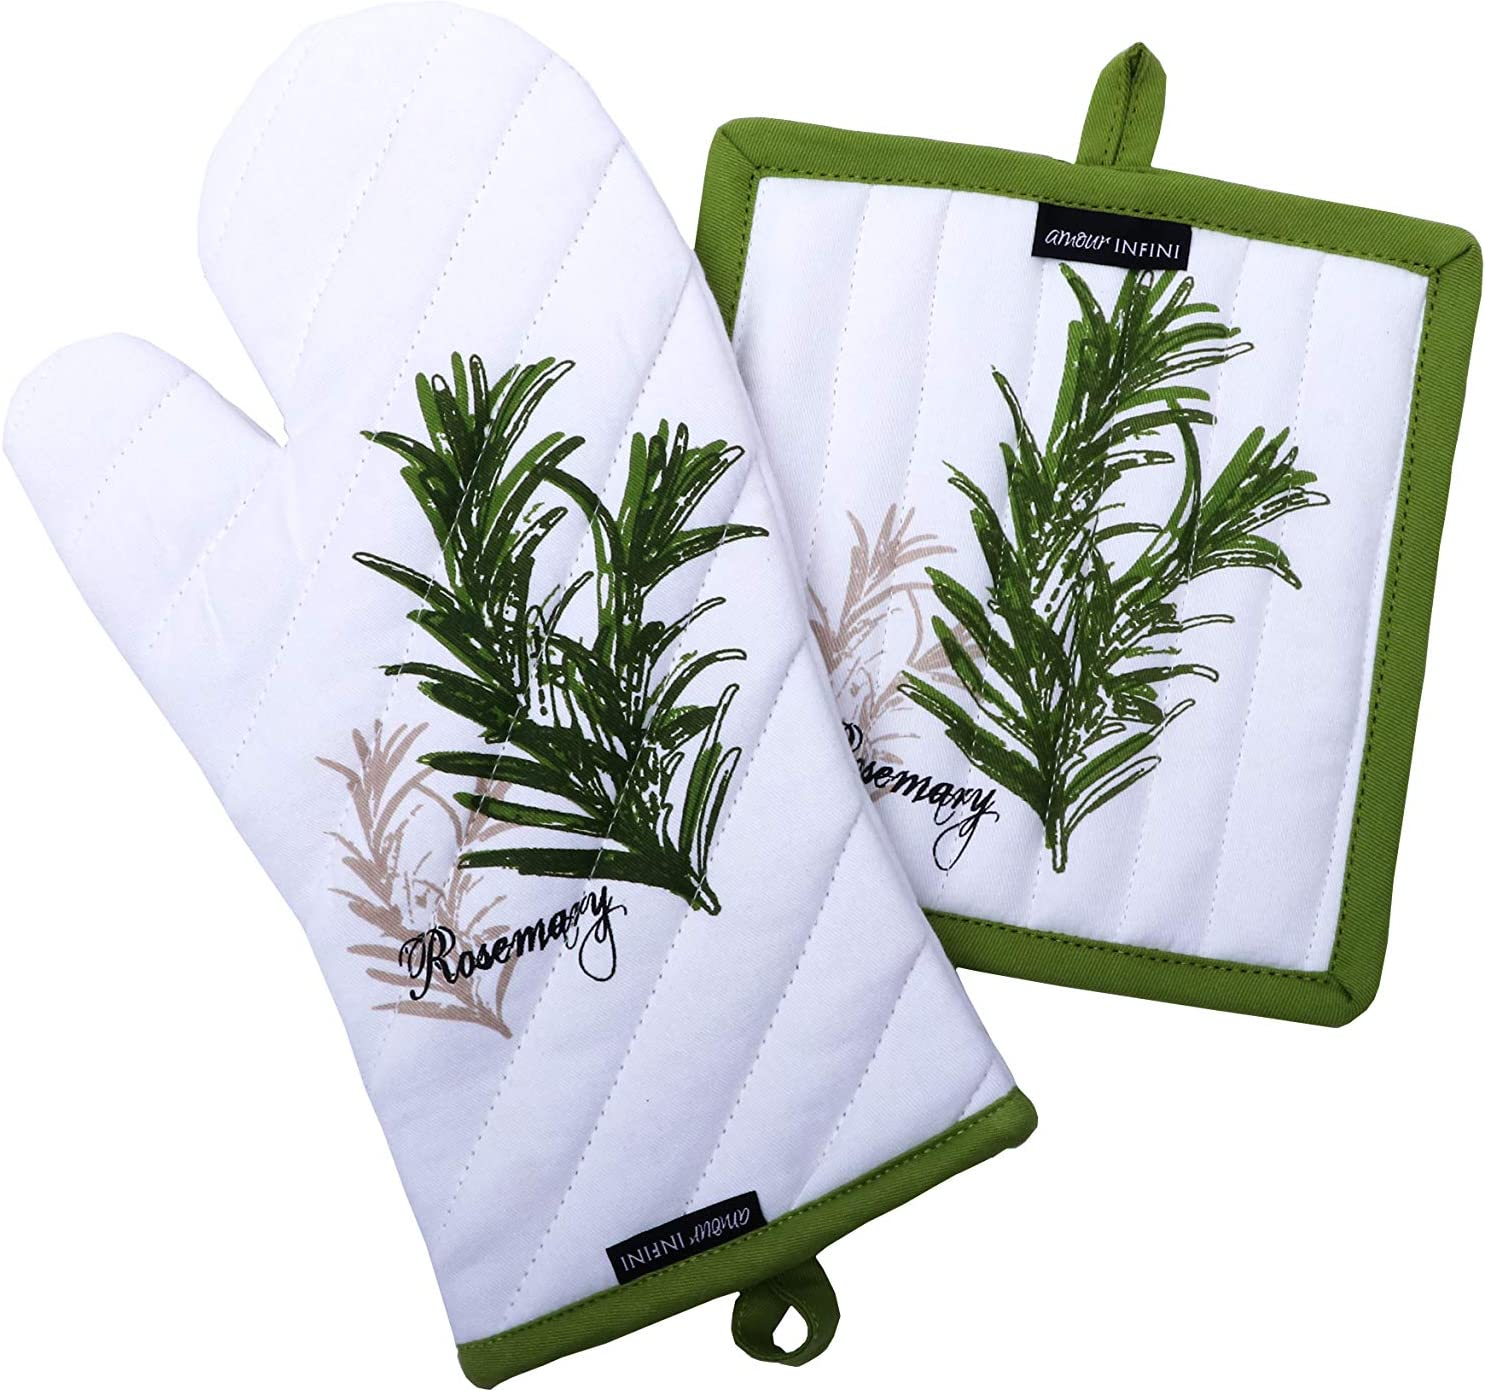 Amour Infini Pot Holders and Oven Mitts, Unique Herb Garden Design, Heat Resistant, 100% Cotton, Set of 1 Oven Mitt and 1 Pot Holder